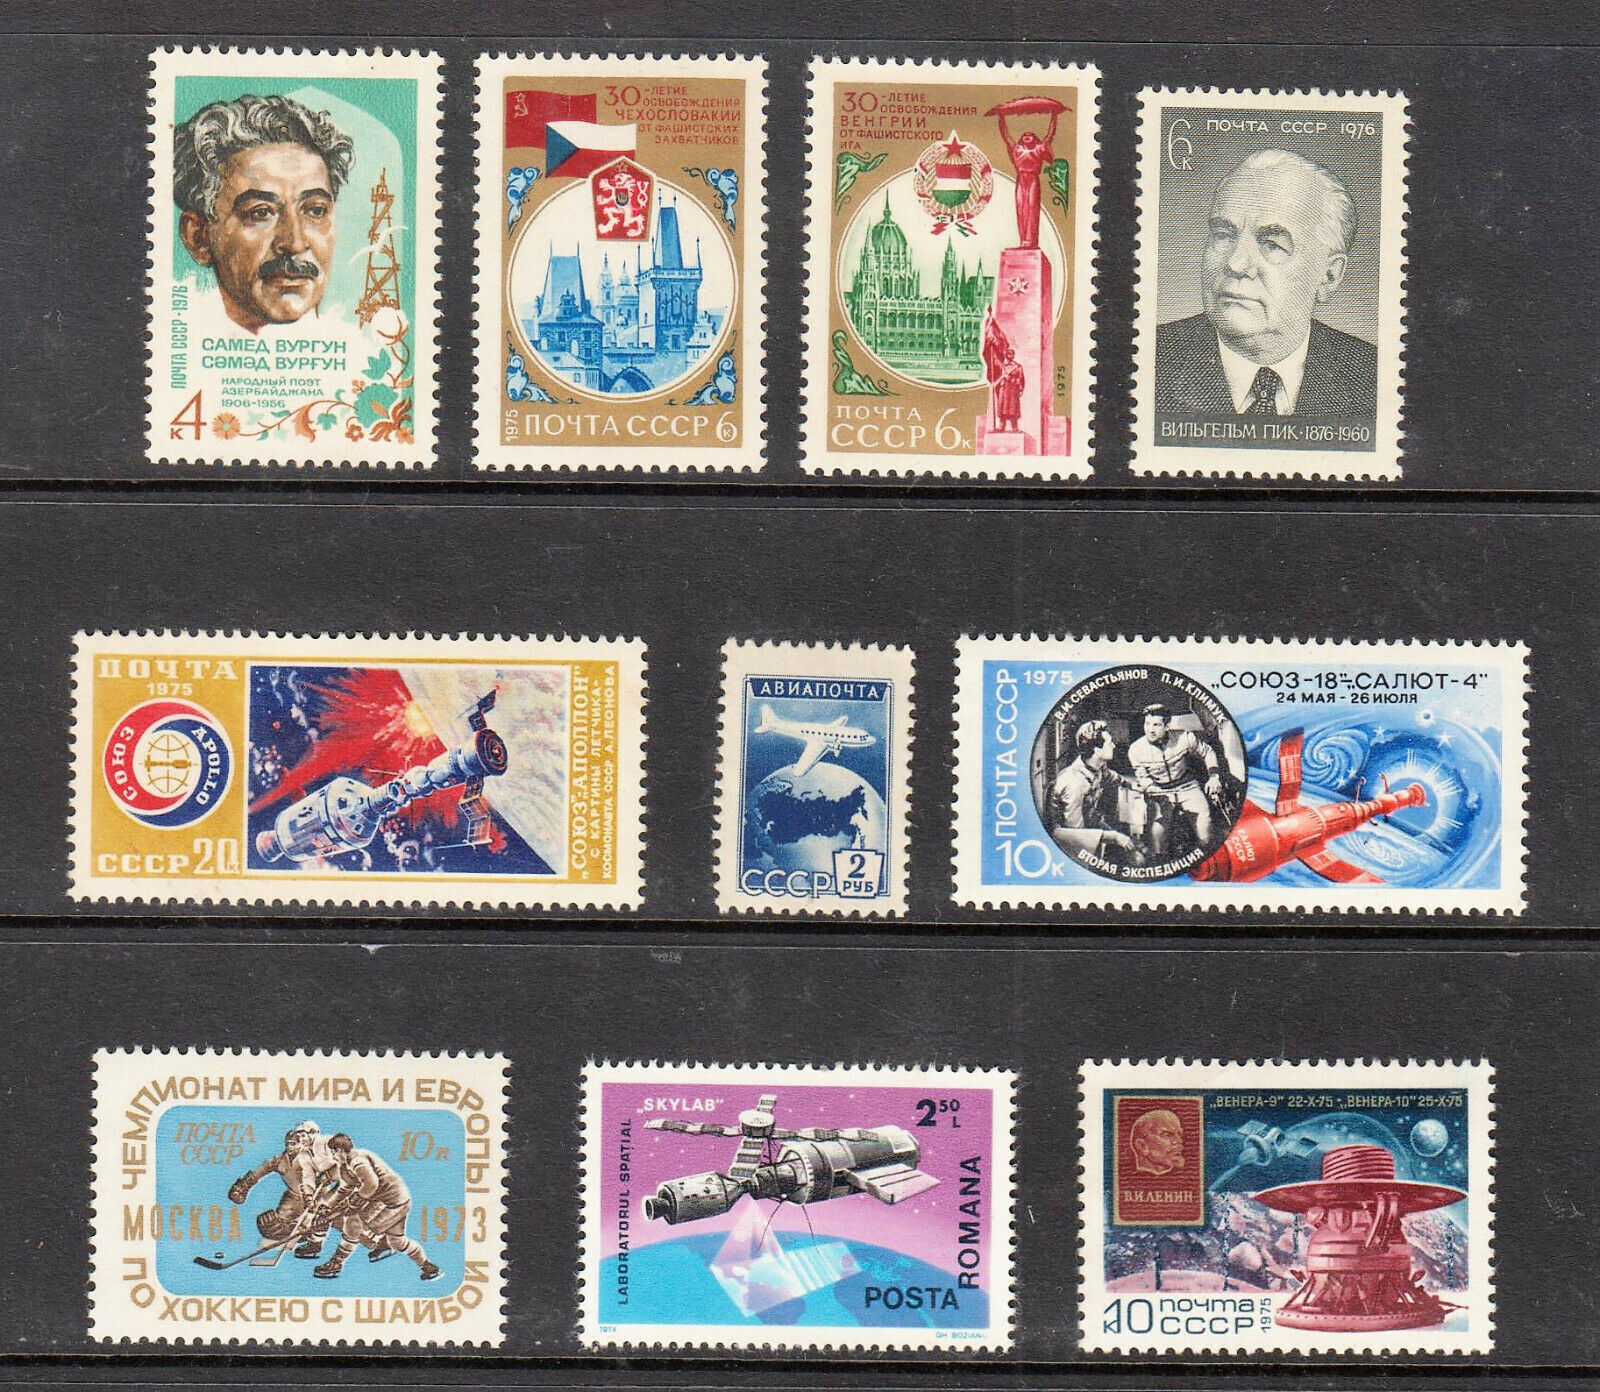 Postage Stamps - Europe - Russia and the Soviet Union | eBay